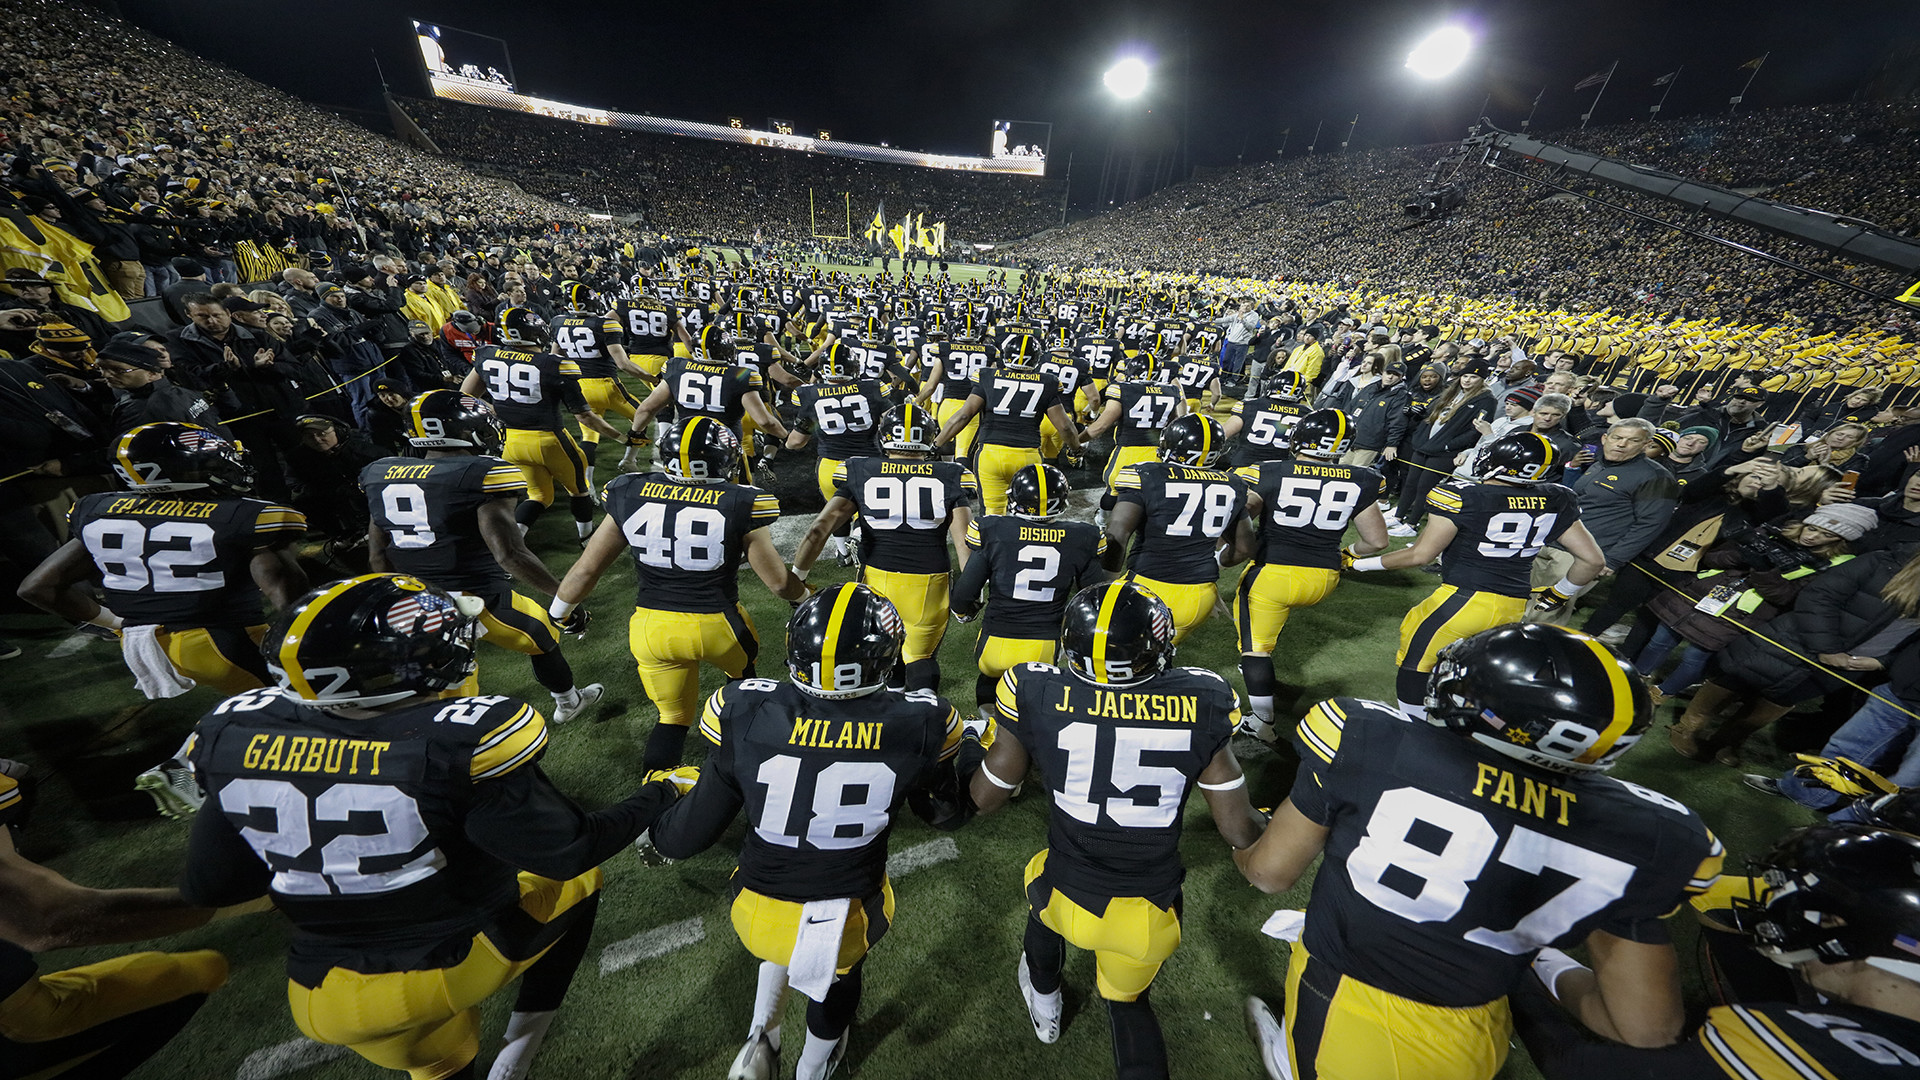 Iowa Hawkeye Background Wallpapers 69 Images